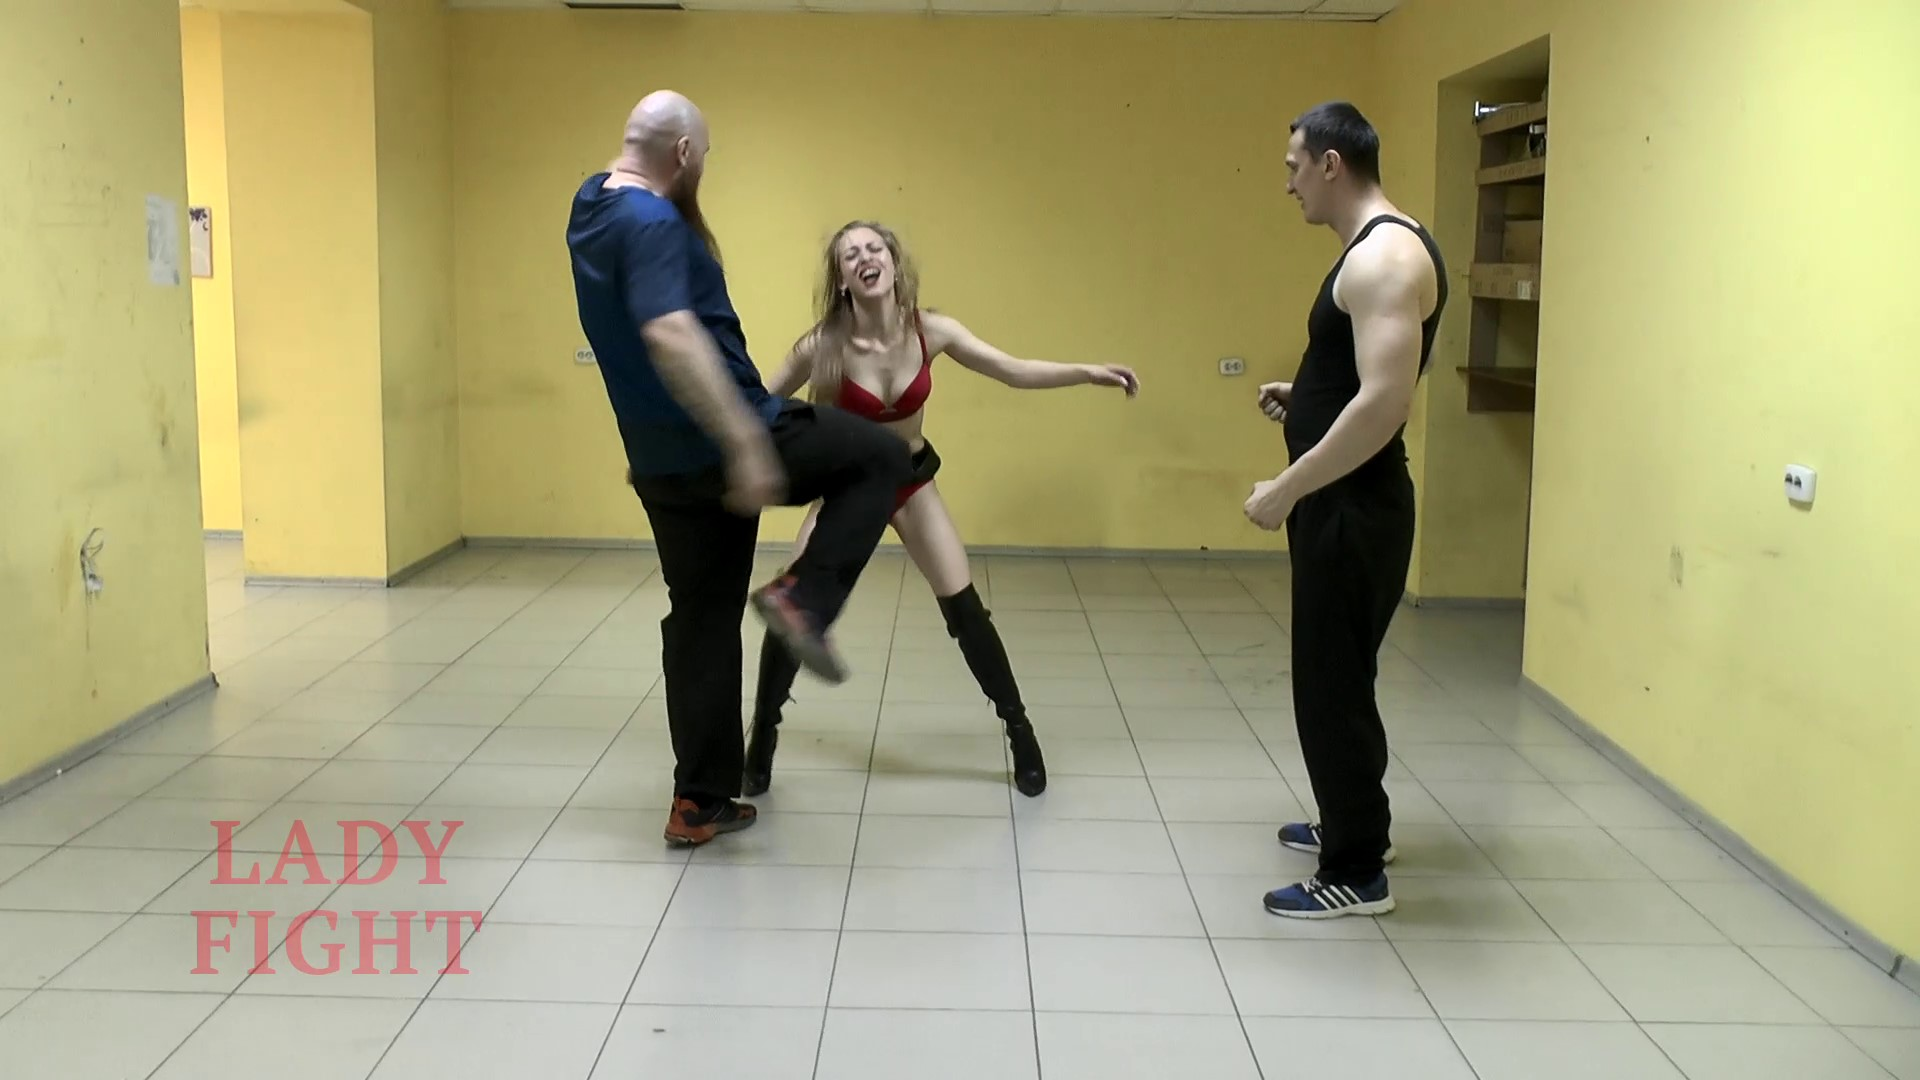 LADYFIGHT-Deadly-Wrestling-For-Lora-109